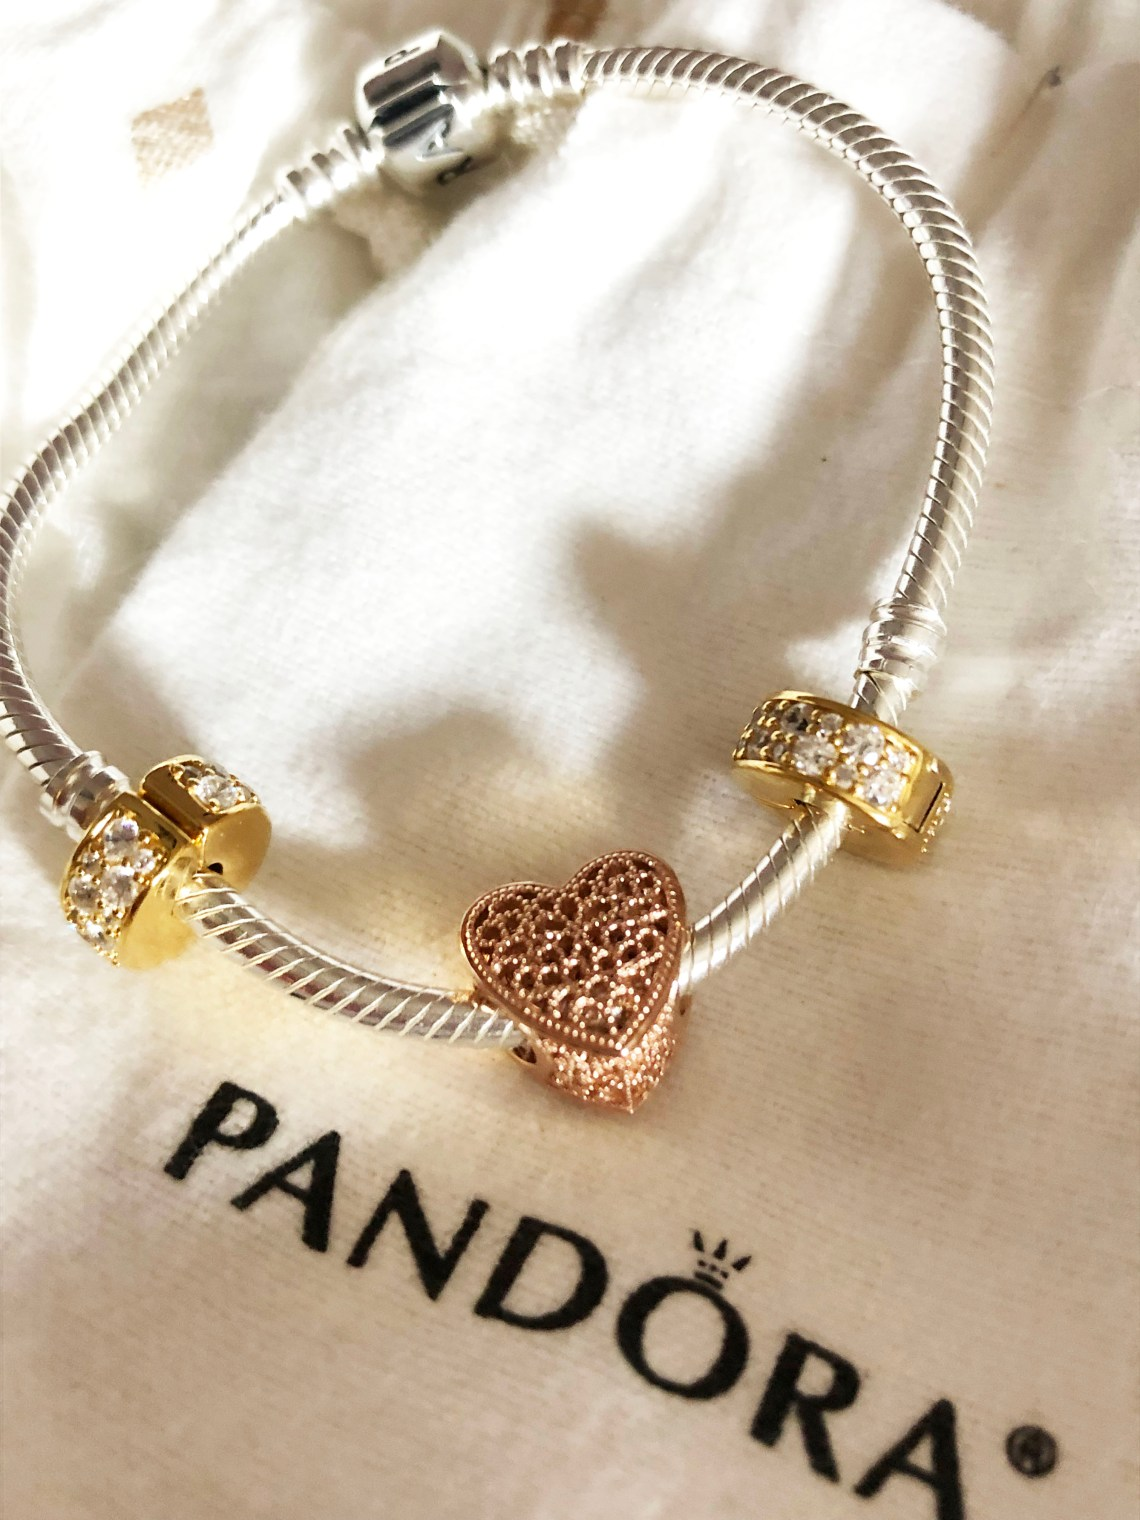 Pandora Bracelet - Filled with Romance Charm